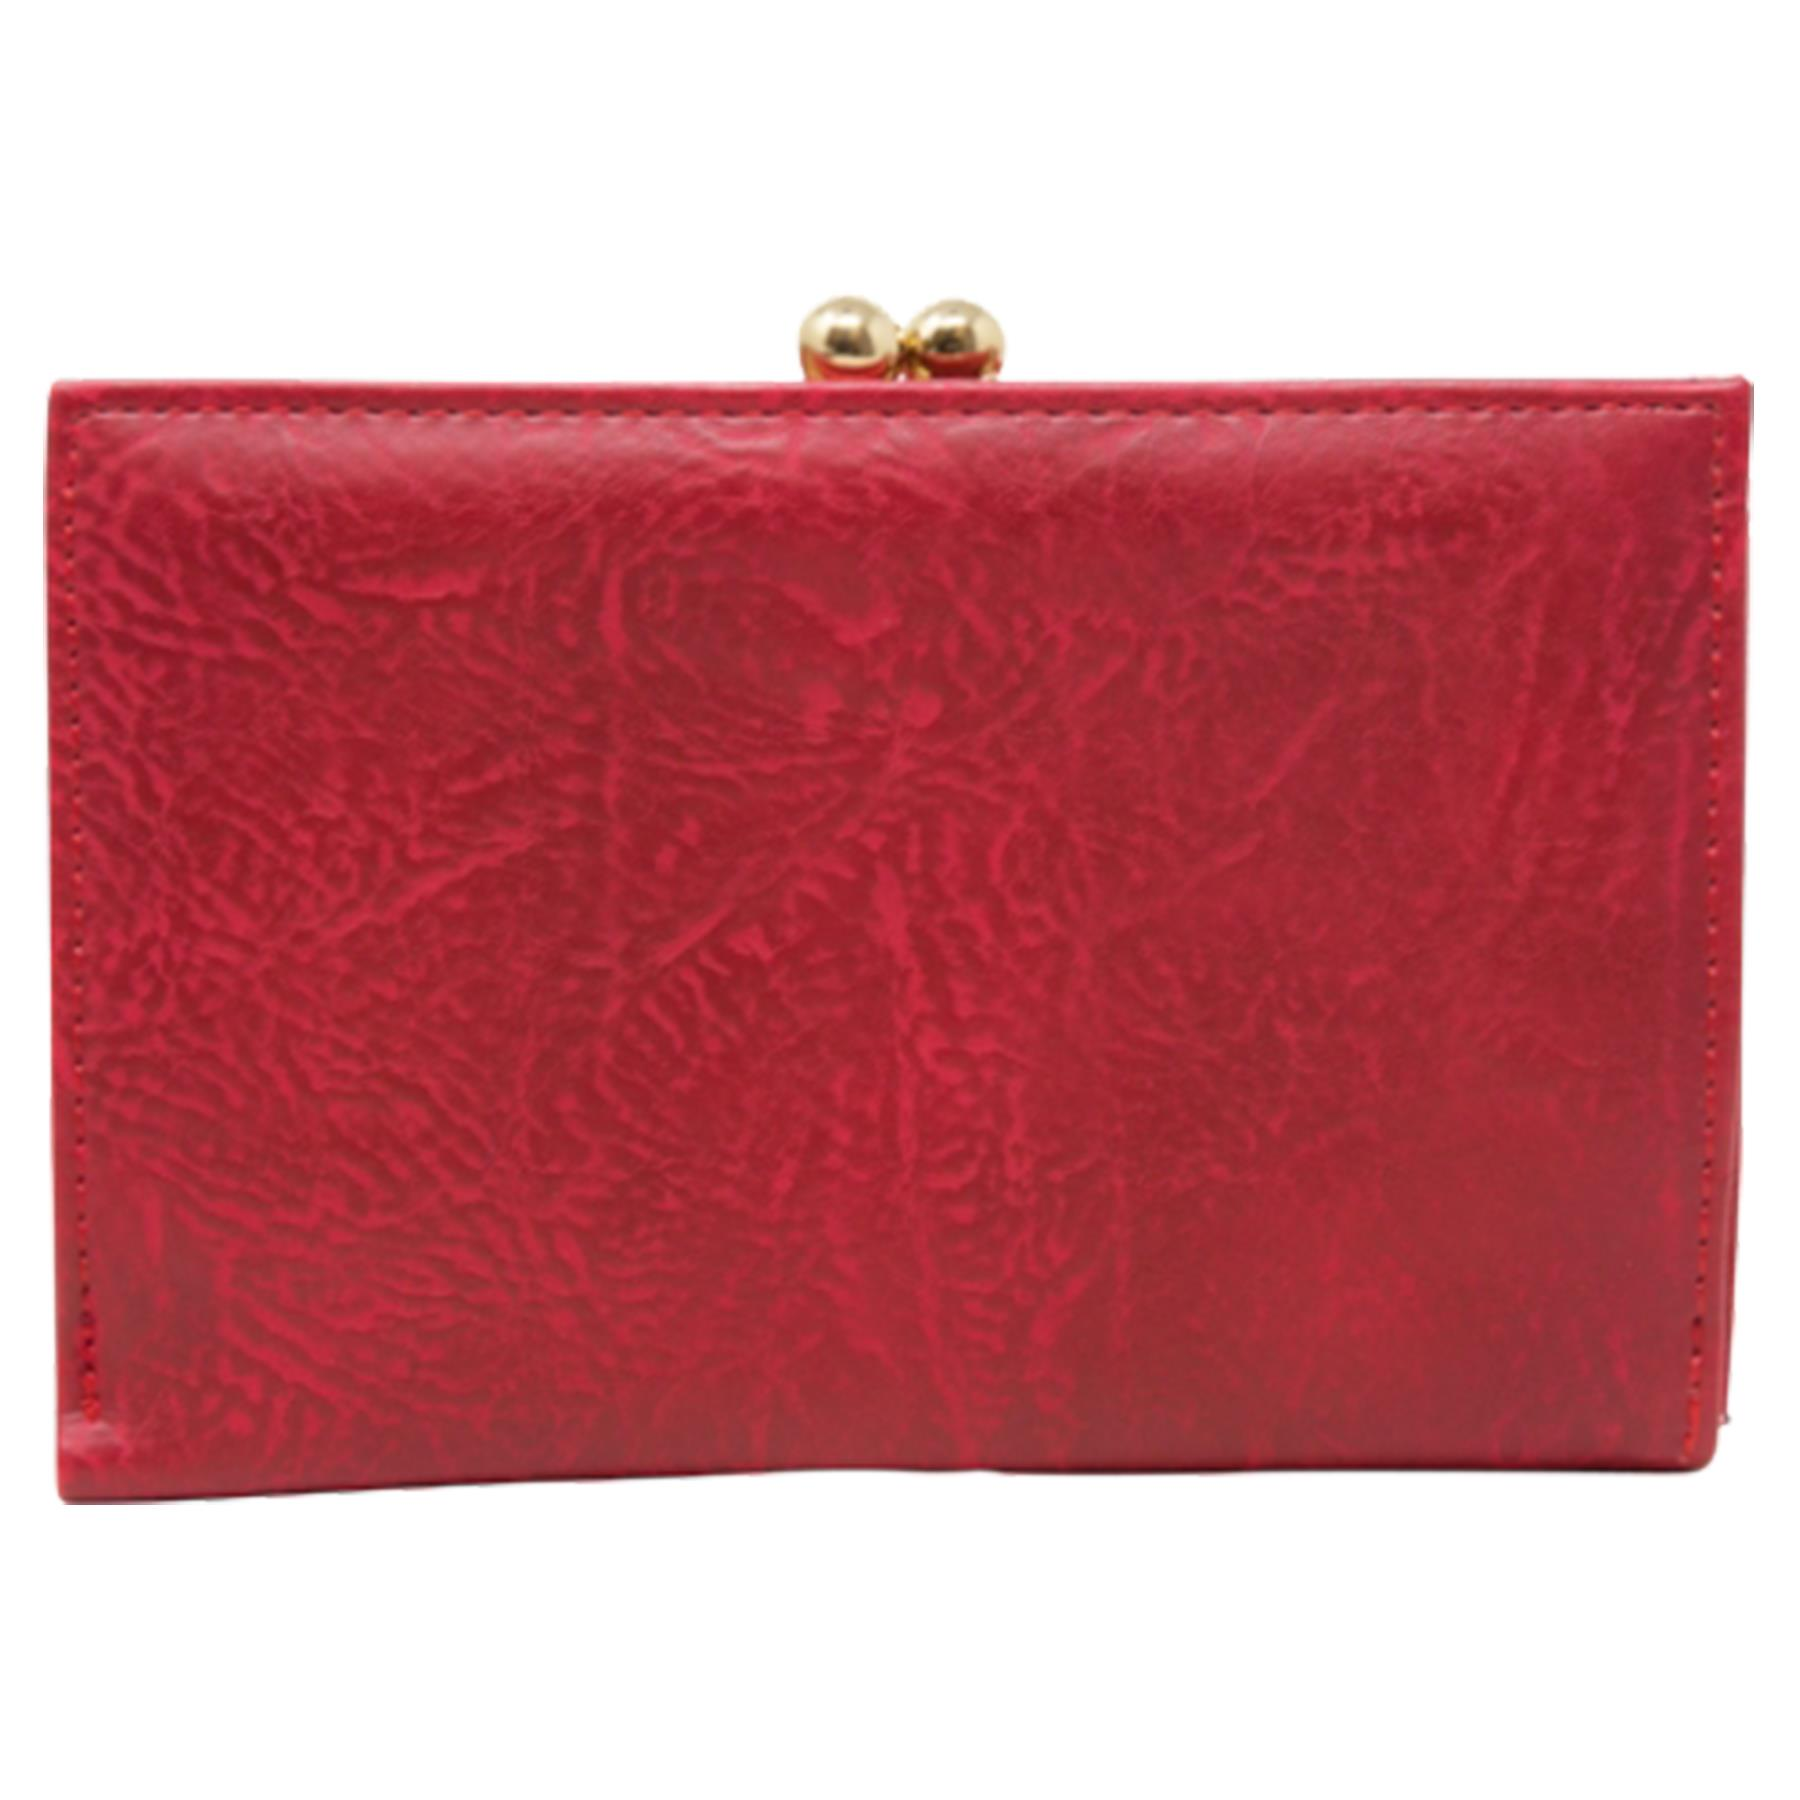 New-Synthetic-Leather-Kiss-Lock-Compartment-Ladies-Casual-Wallet-Purse thumbnail 24